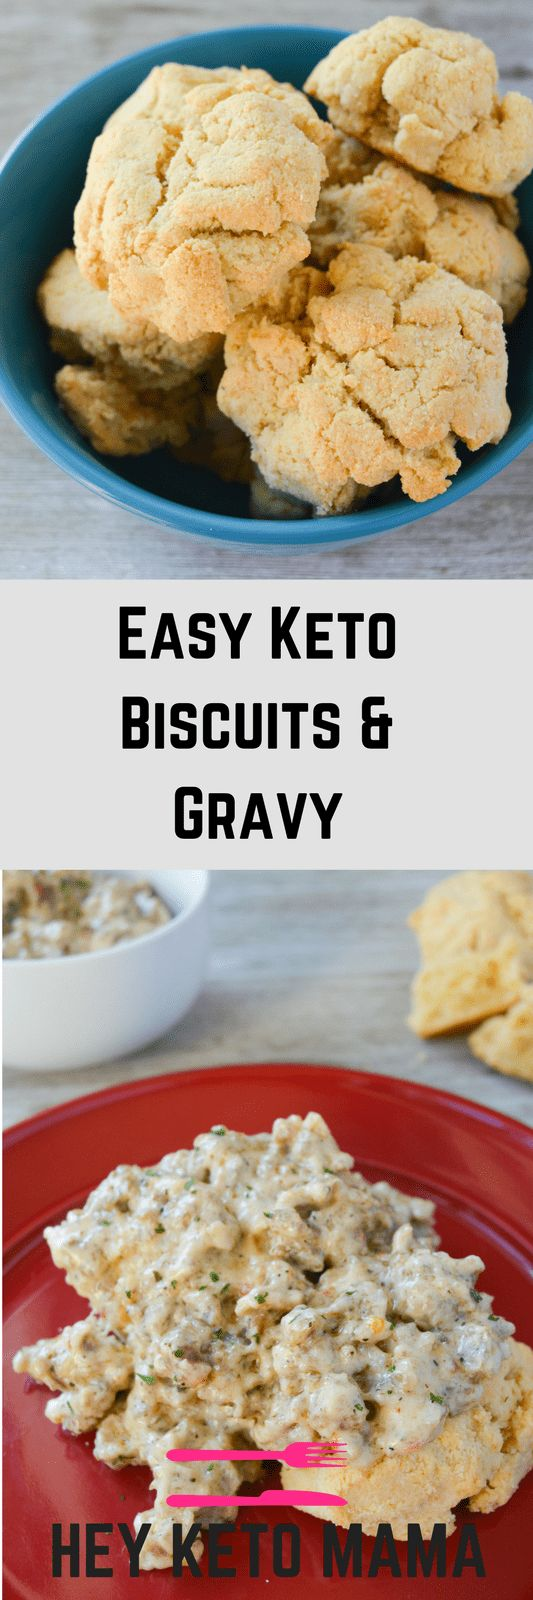 Get ready to experience ketogenic breakfast bliss. This Easy Keto Biscuits and Gravy recipe is an amazing way to start your day with a southern feel! via @heyketomama